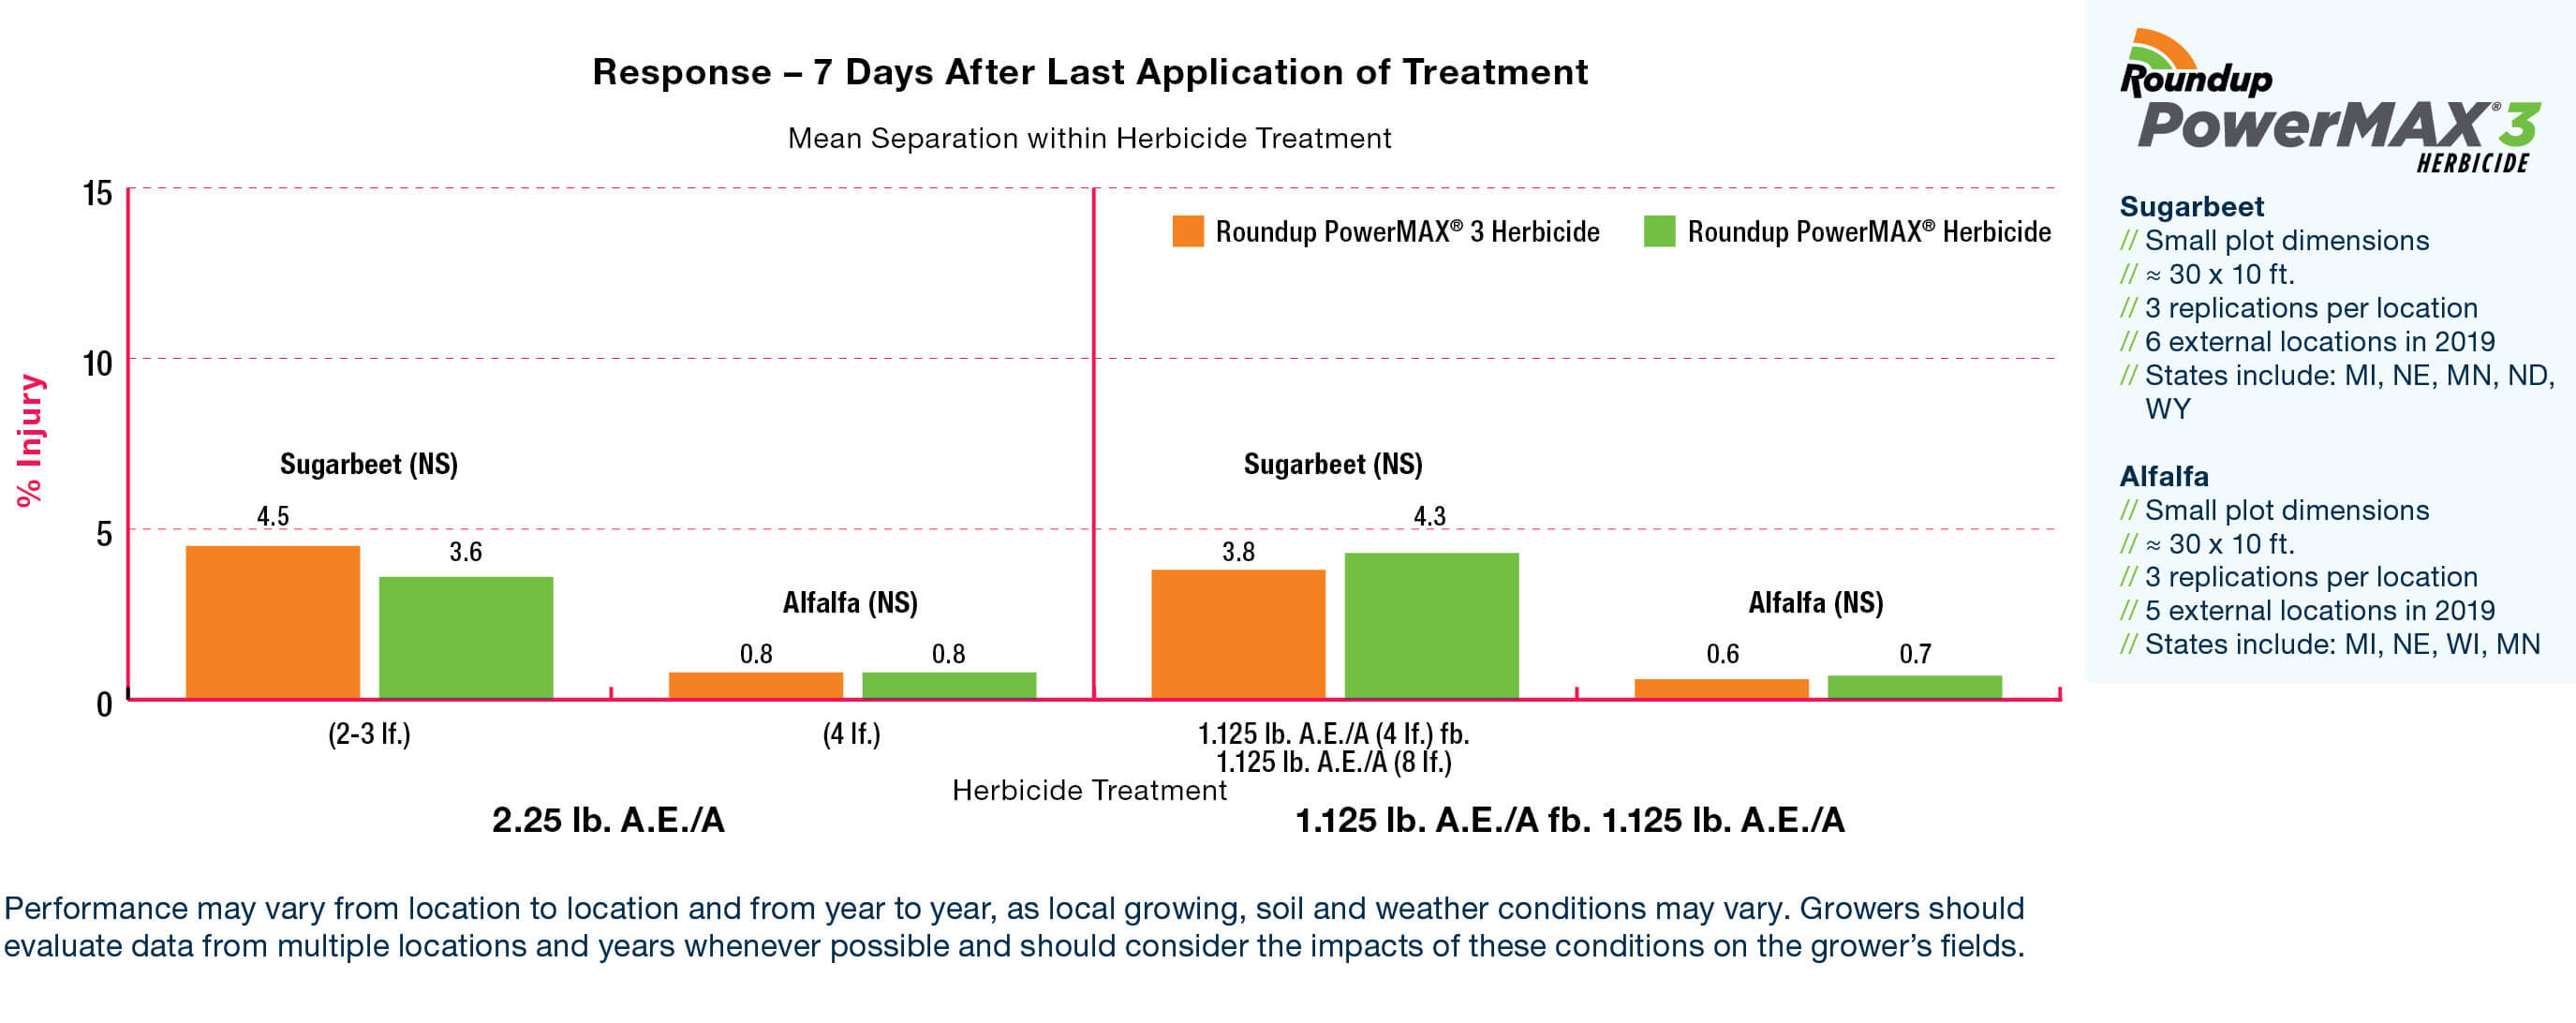 Roundup PowerMAX 3 herbicide performance response 7 days after last application treatment for sugarbeet and alfalfa